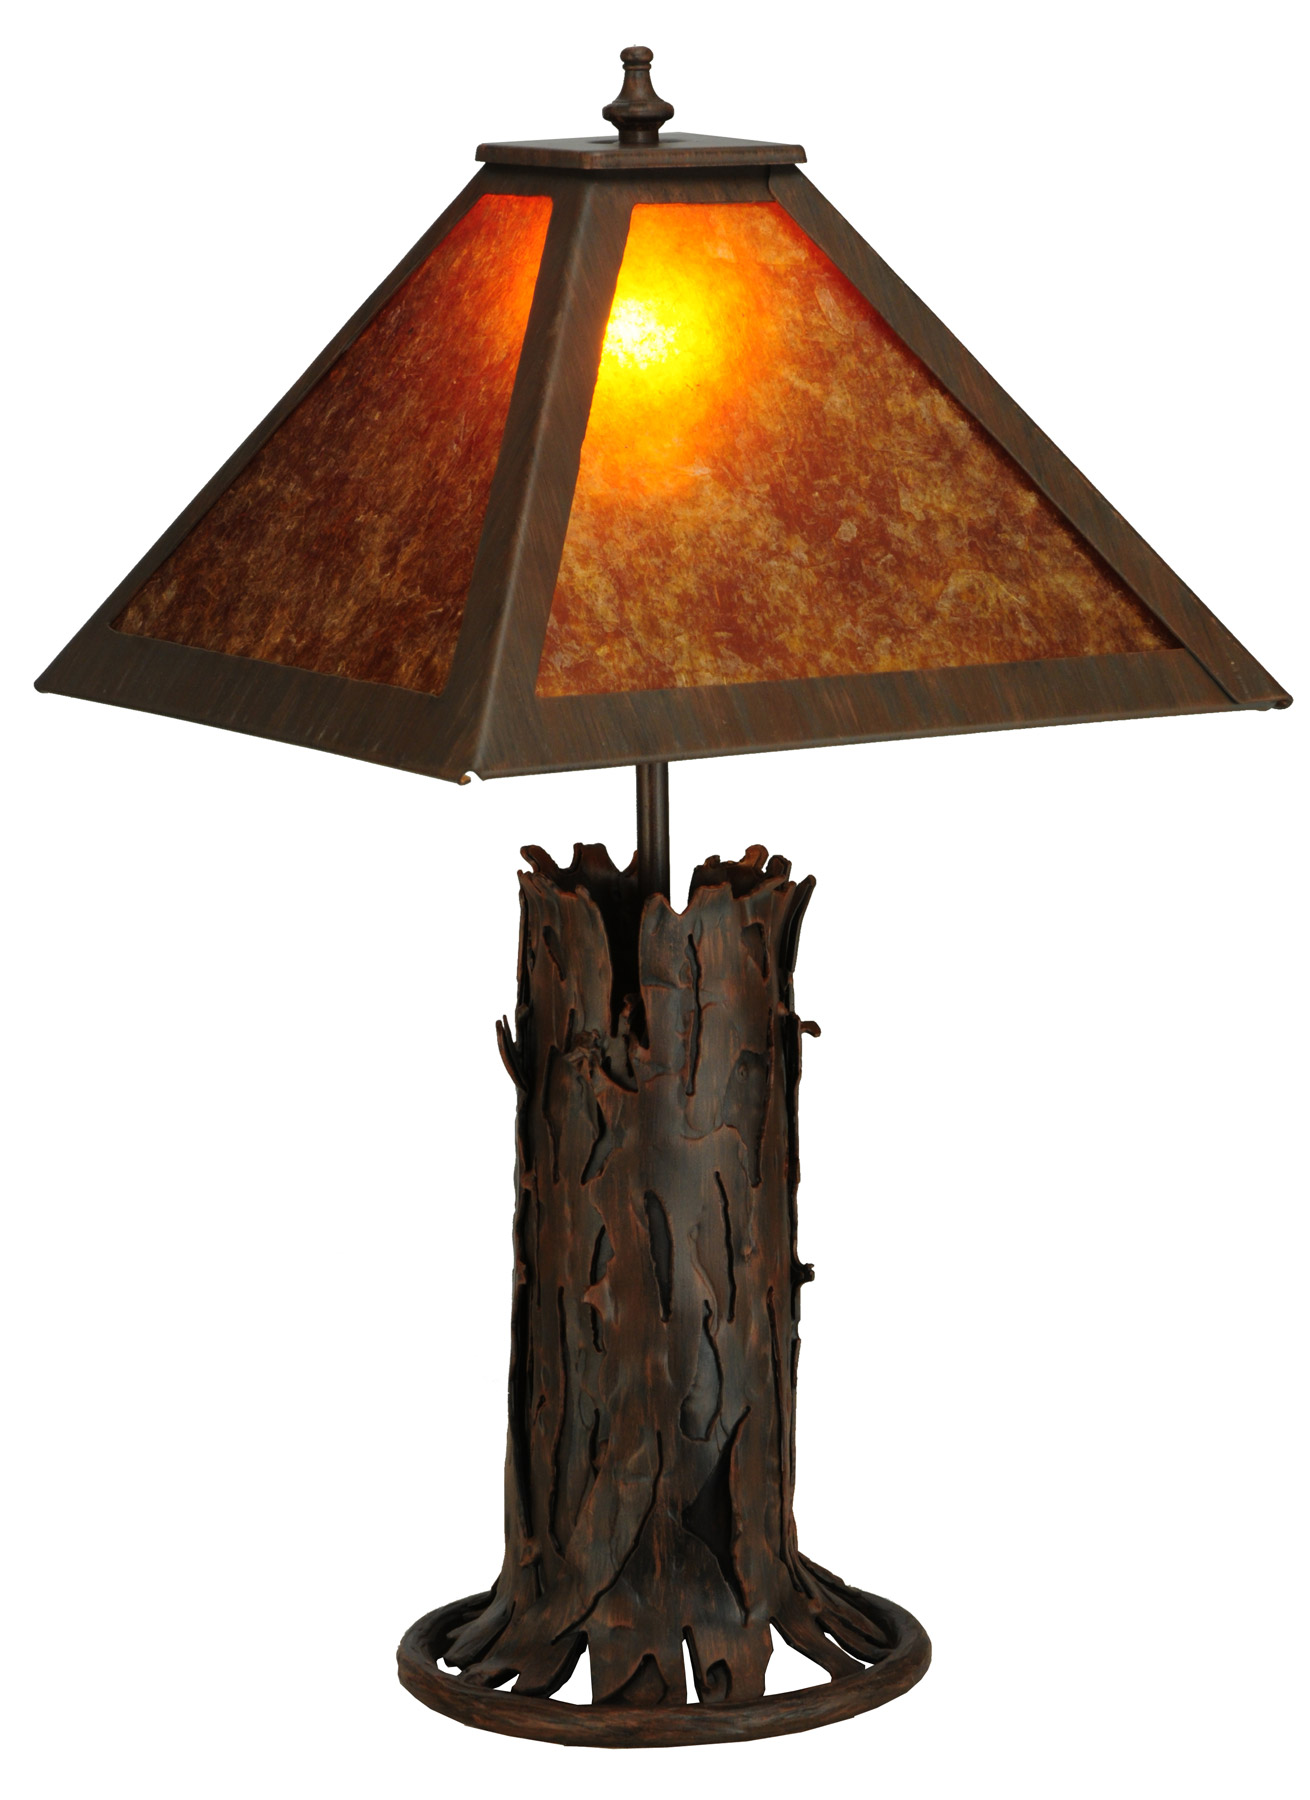 Simple Table Lamp Meyda 141532 Northwoods Simple Table Lamp